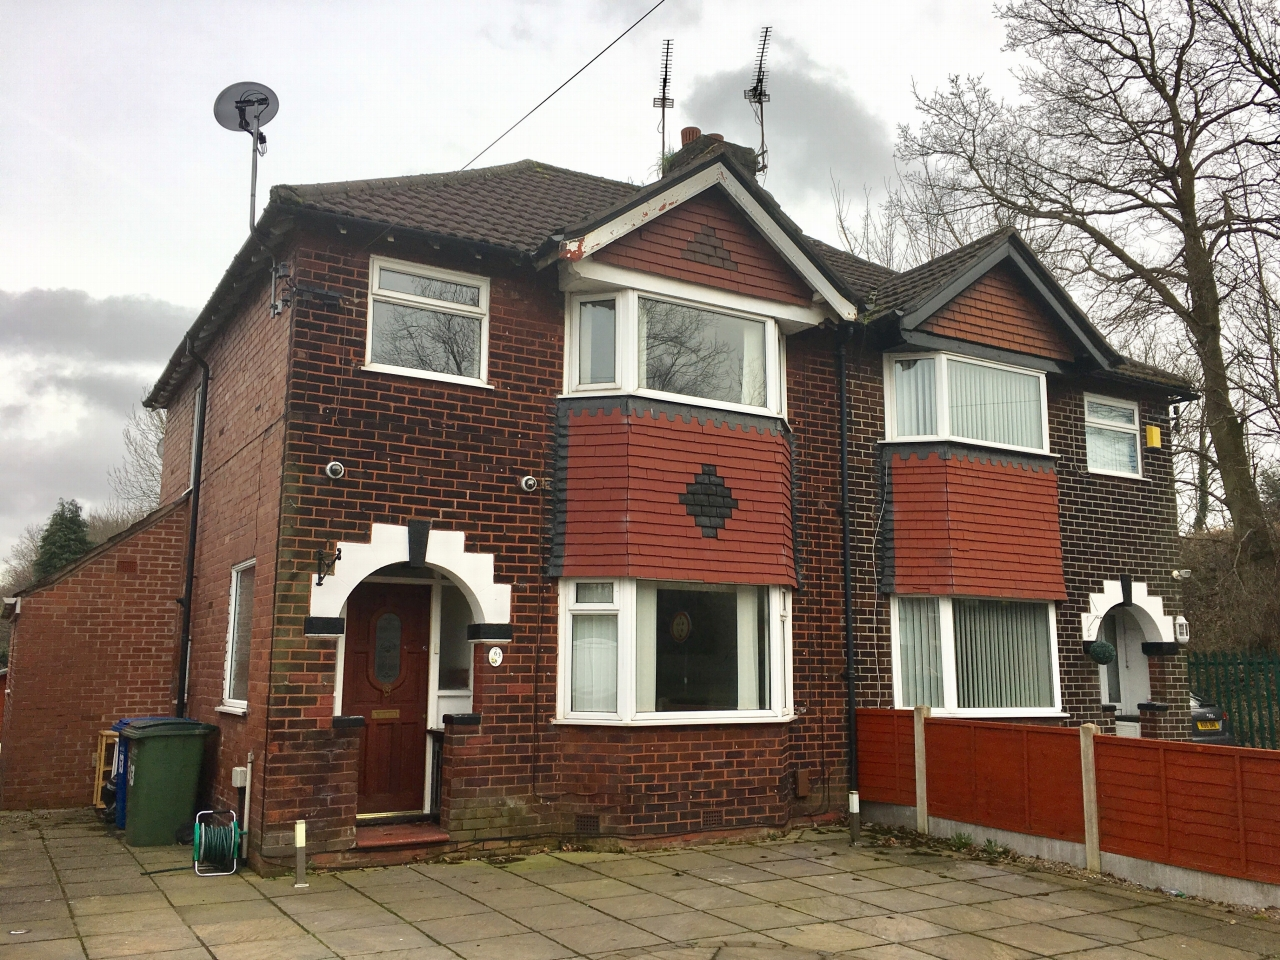 3 bedroom semi detached house for sale in 63 chester road 3 bedroom semi detached house for sale image 1